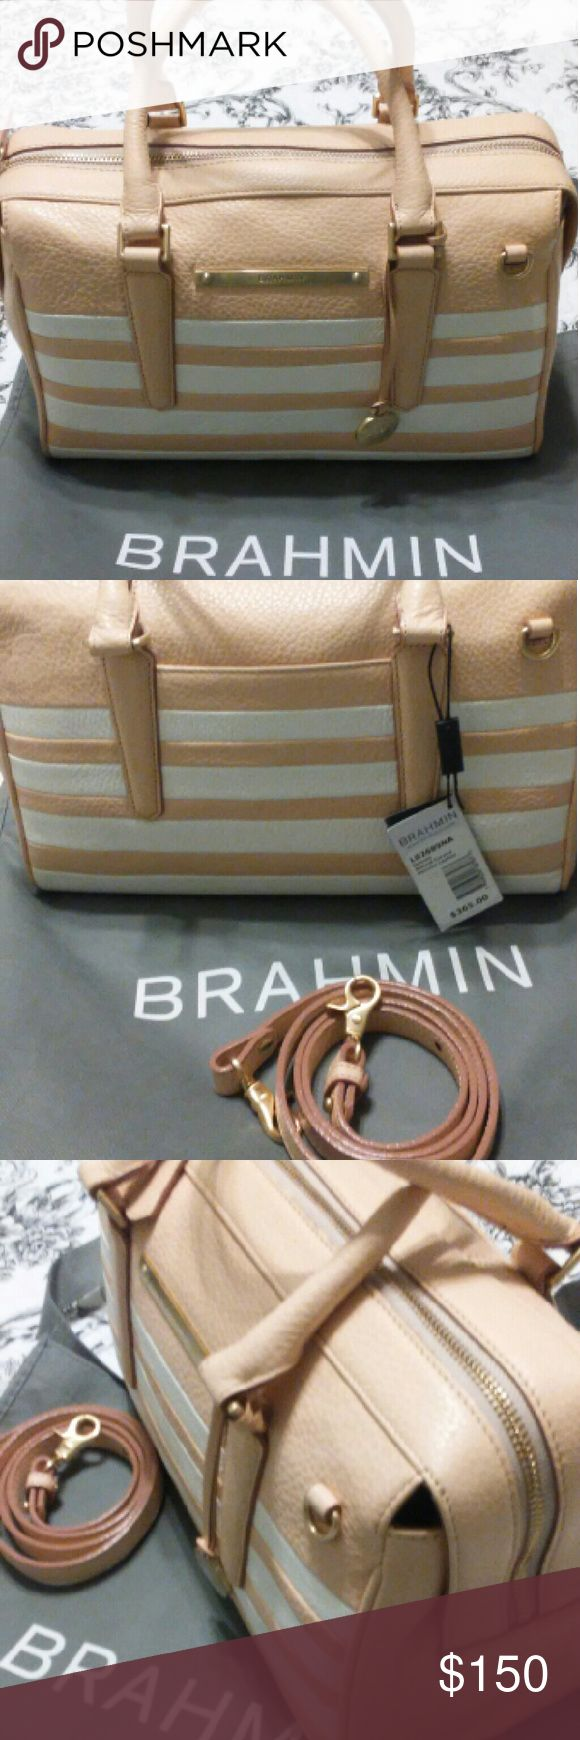 "NWT BRAHMIN Handbag Genuine Leather, outside pocket for cell phone, large zipper pocket, 2 open pockets inside. 5"" handle drop, with a detachable shoulder strap. Color is white & blush, like shown in pic. Very neutral color. Beautiful soft Swede interior, a BRAHMIN trade mark along with key fob, loop for 2 pens and Brahmin tag. Brahmin Bags Satchels"